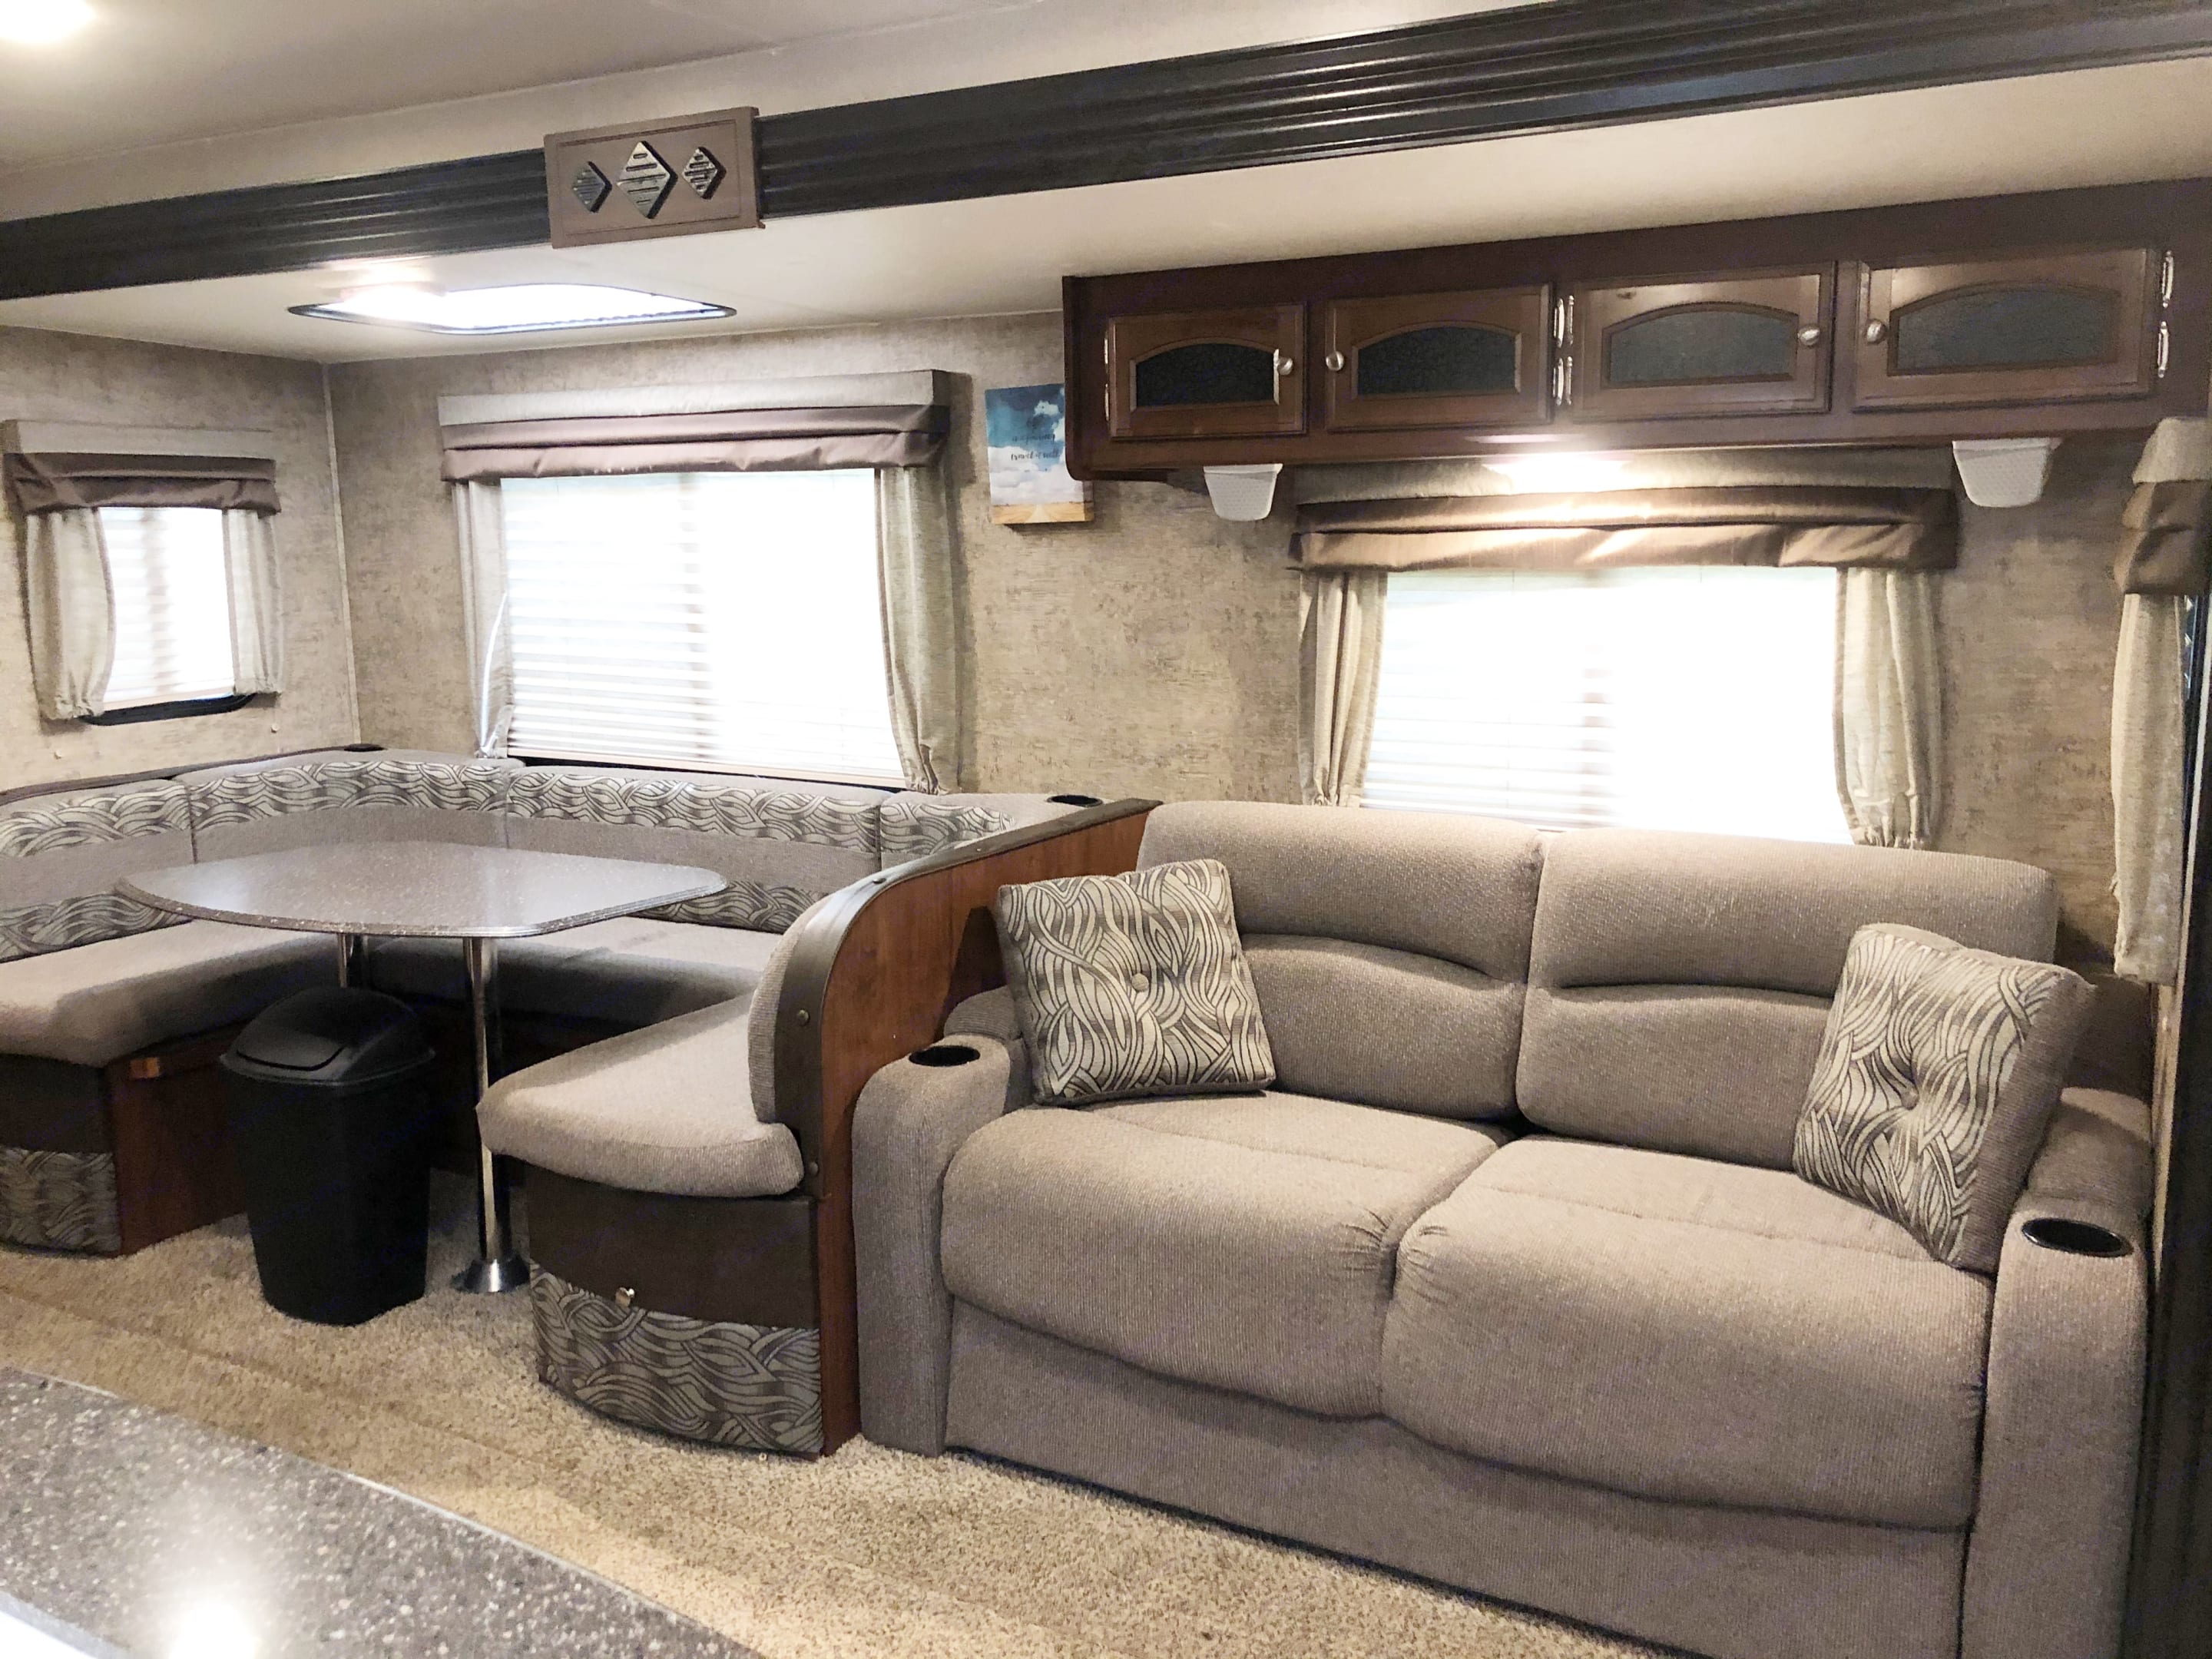 Couch and table. Coachmen Freedom Express 2017